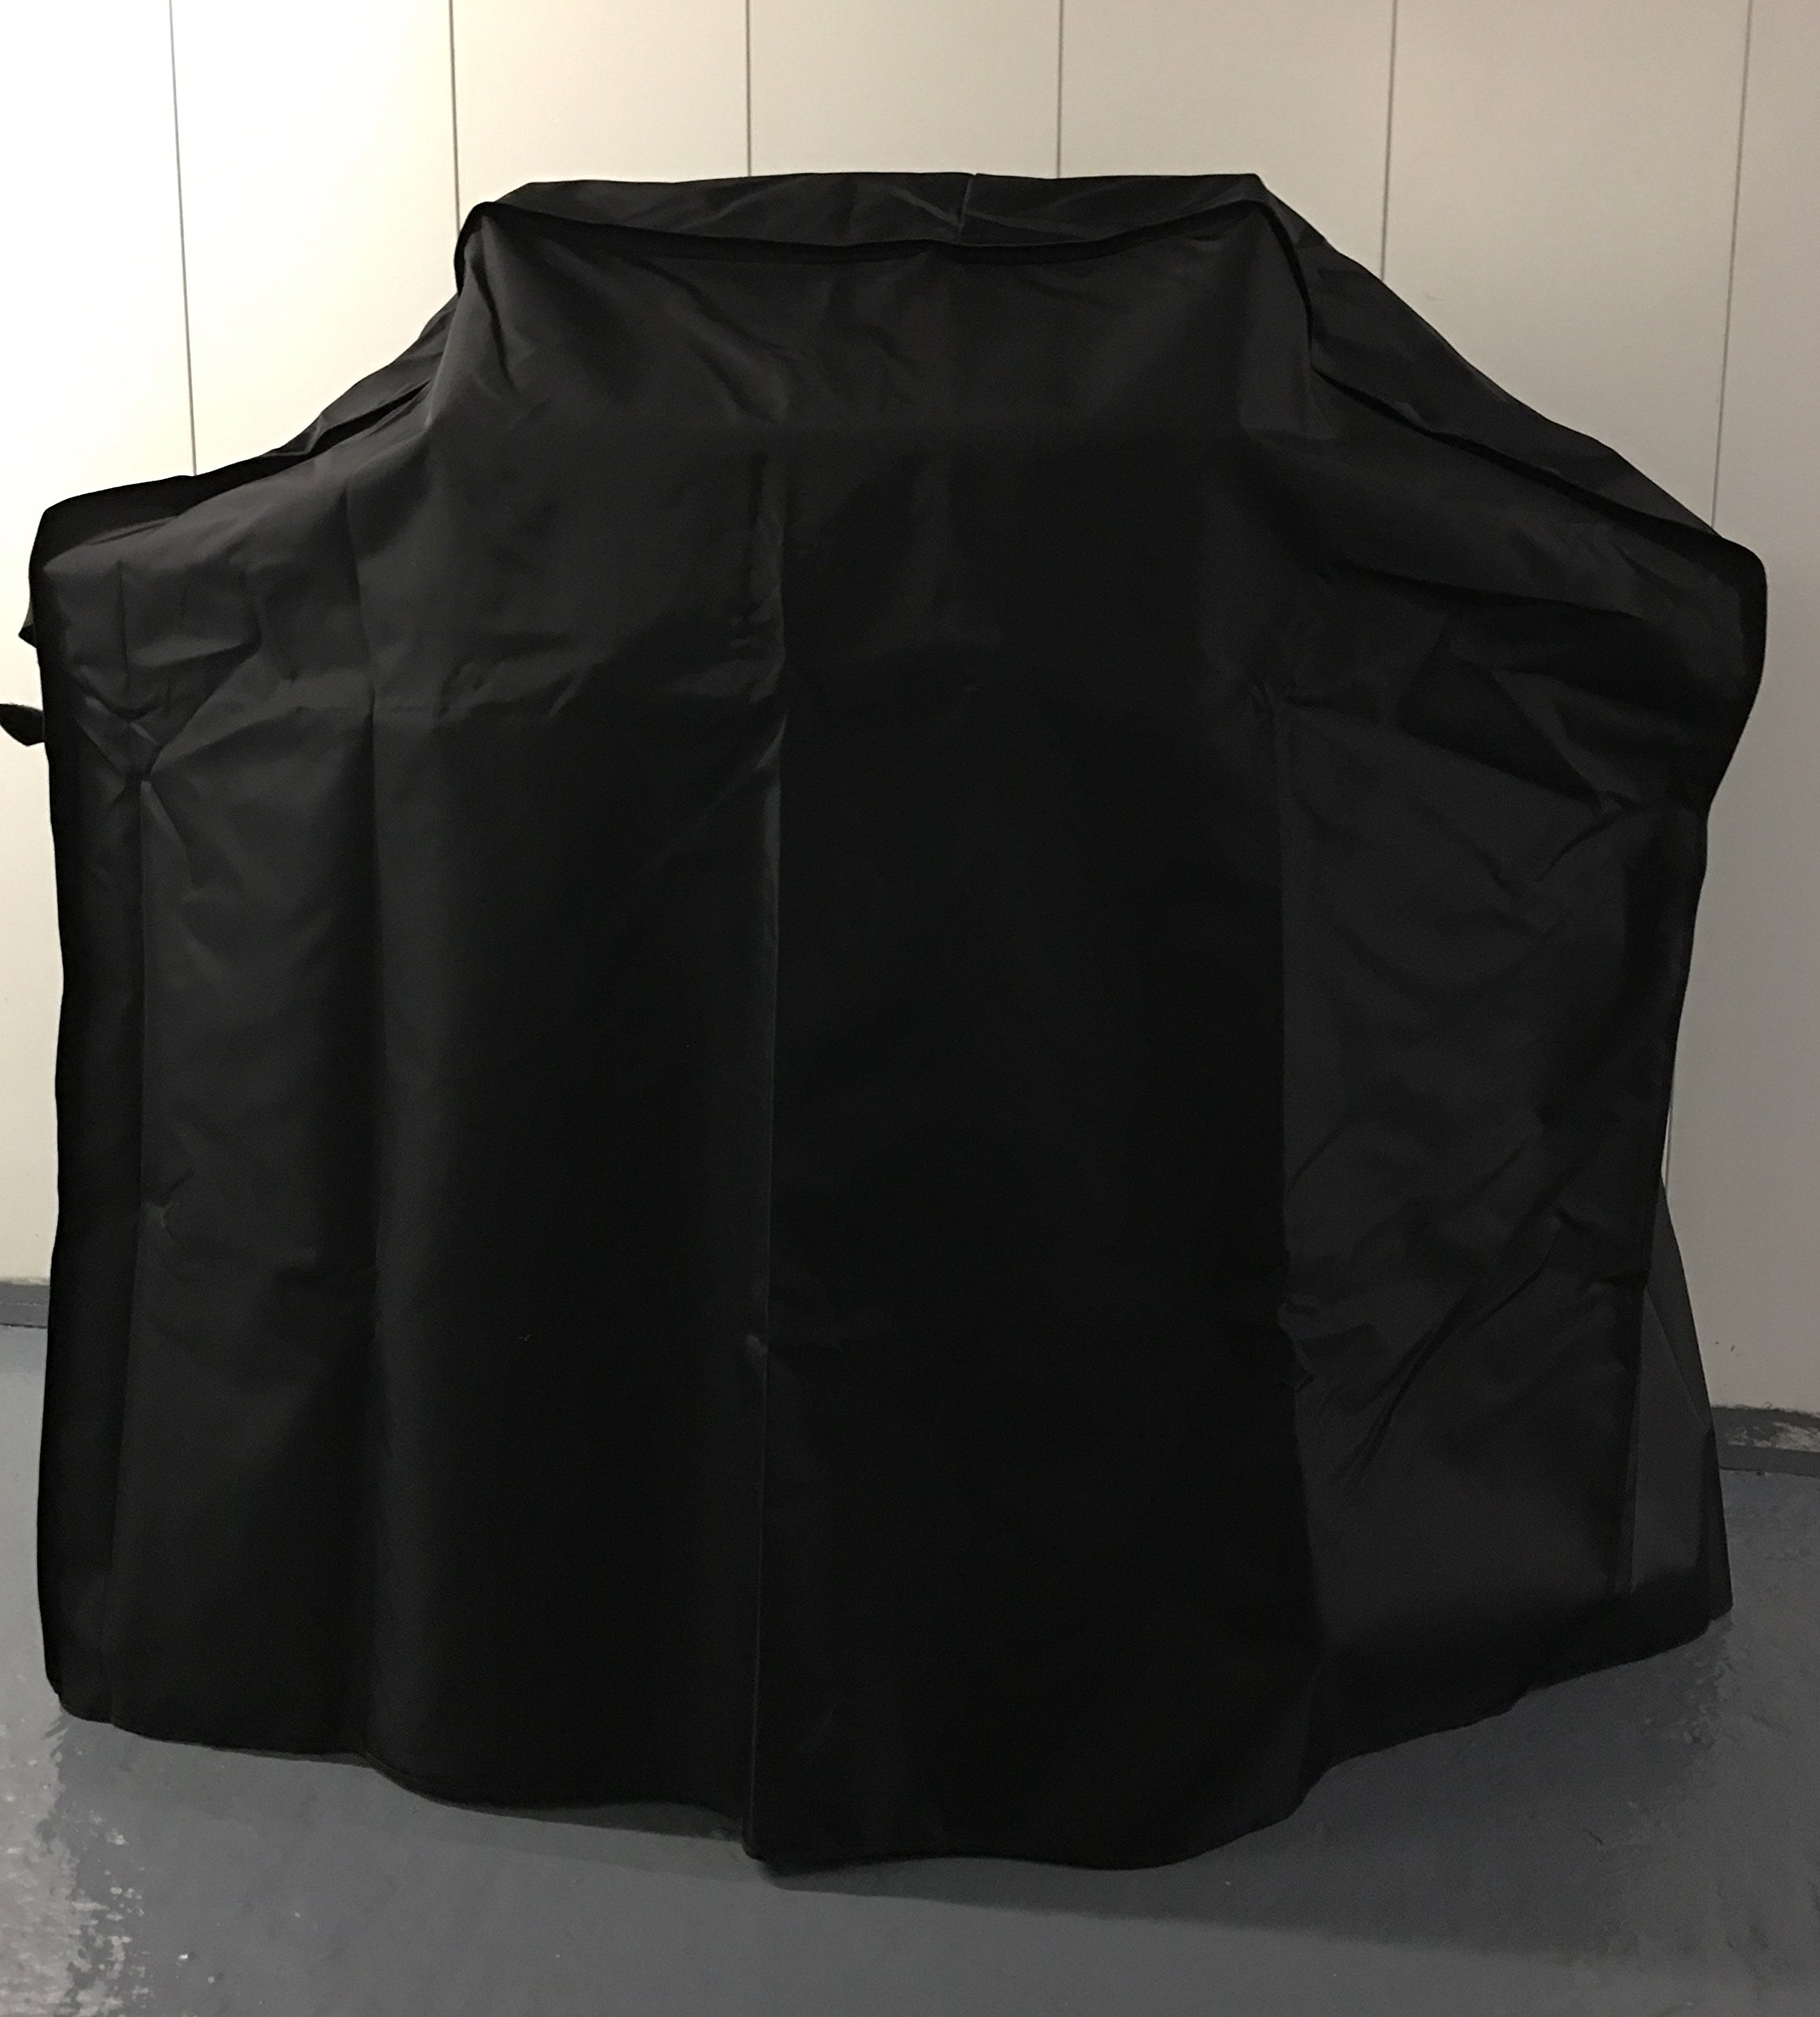 Comp Bind Technology Grill Cover for Weber Genesis II E-610 Gas Grill Custom Fitting Outdoor Marine Black Waterproof Cover - 68''W x 29''D x 45''H